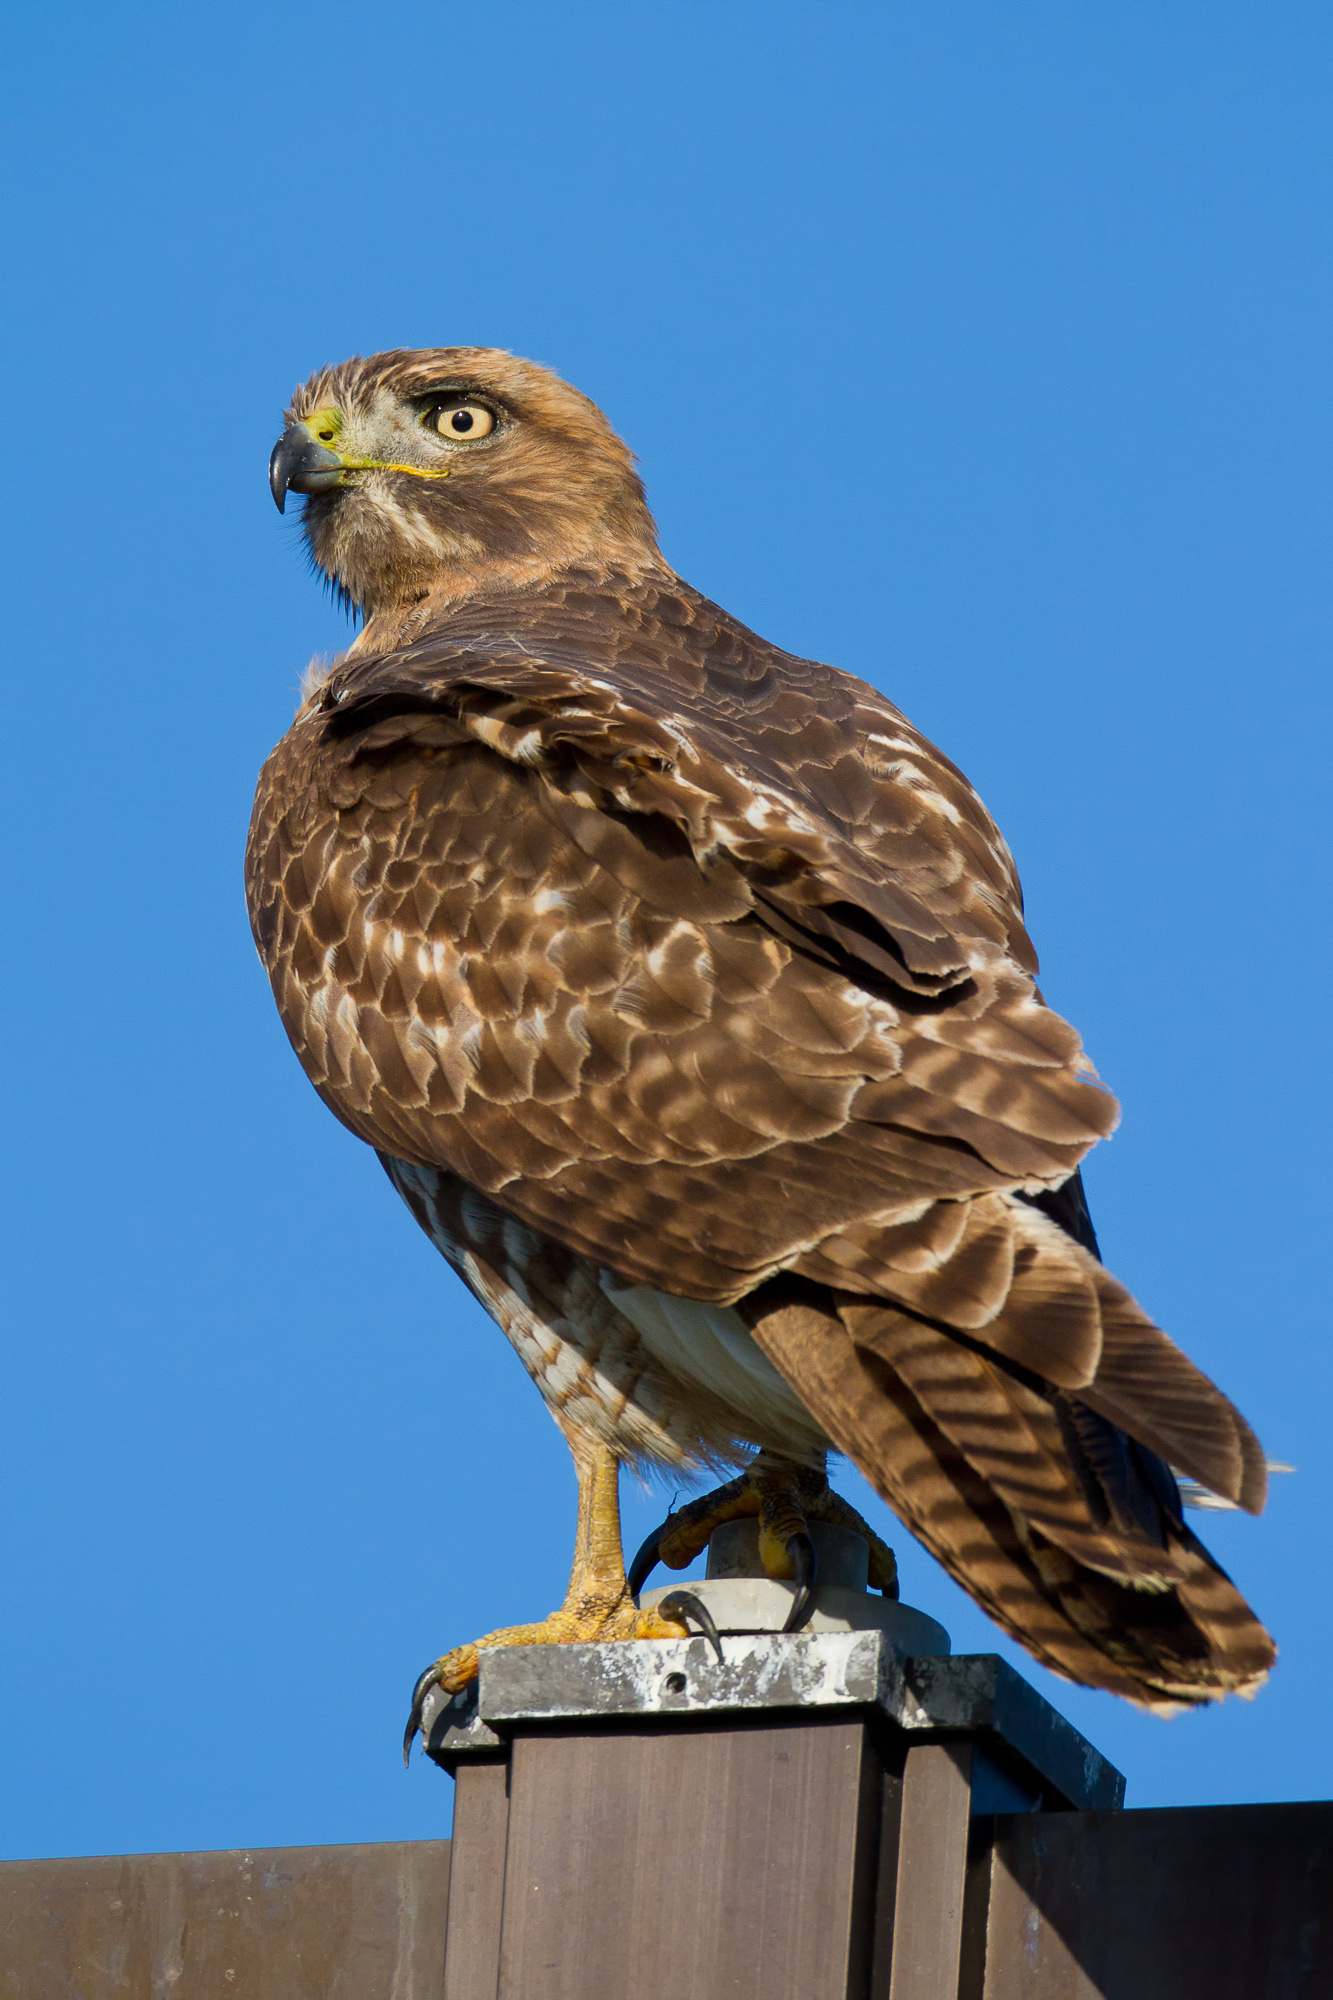 A juvenile red-tailed hawk perches on the top of a metal lamp post